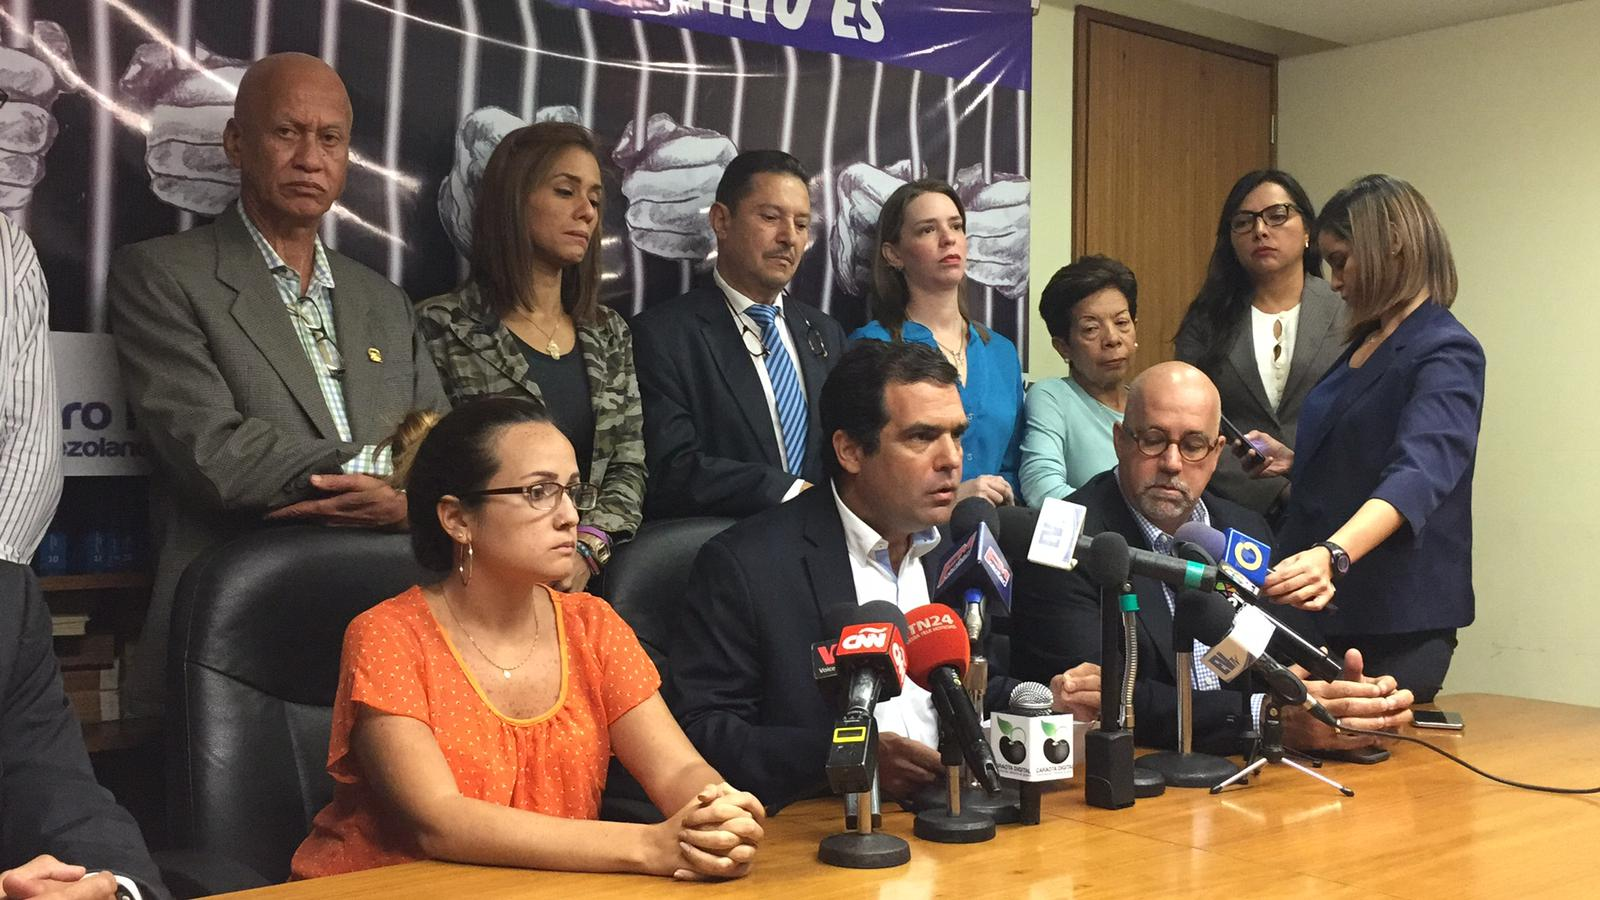 Foro Penal: We will continue to defend human rights attached to the laws and the Constitution